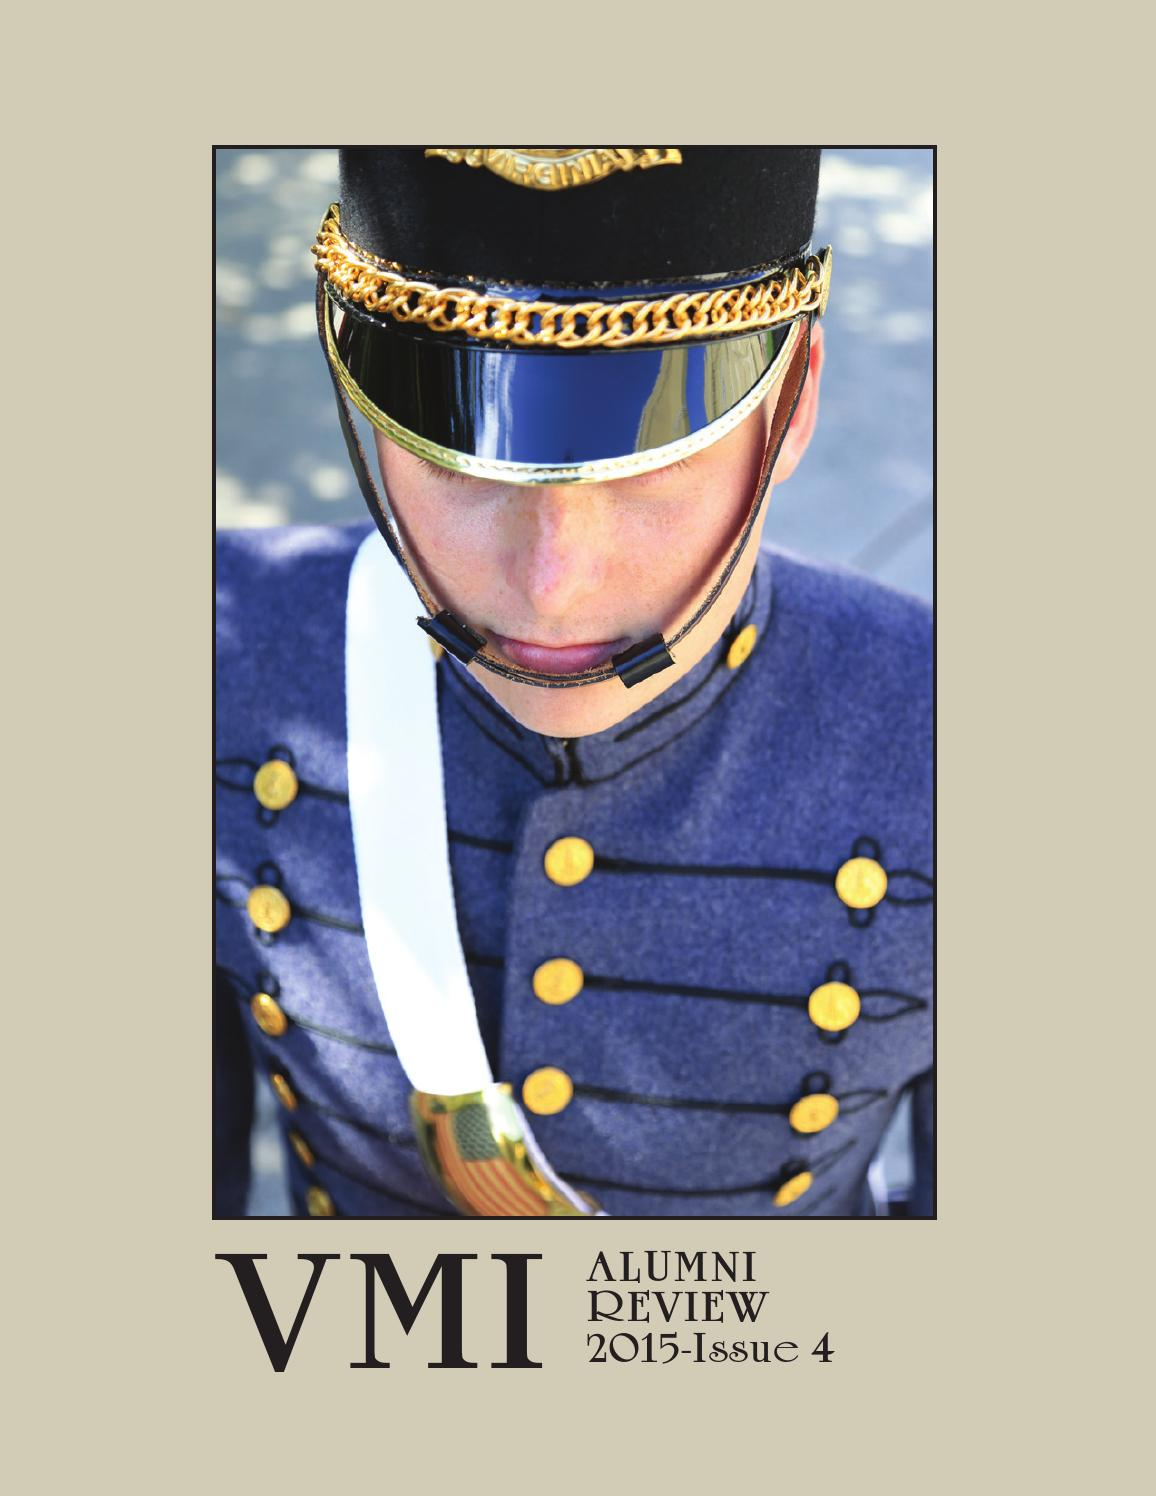 Alumni Review 2015 Issue 4 by VMI Alumni Agencies - issuu 3b9f39eb7